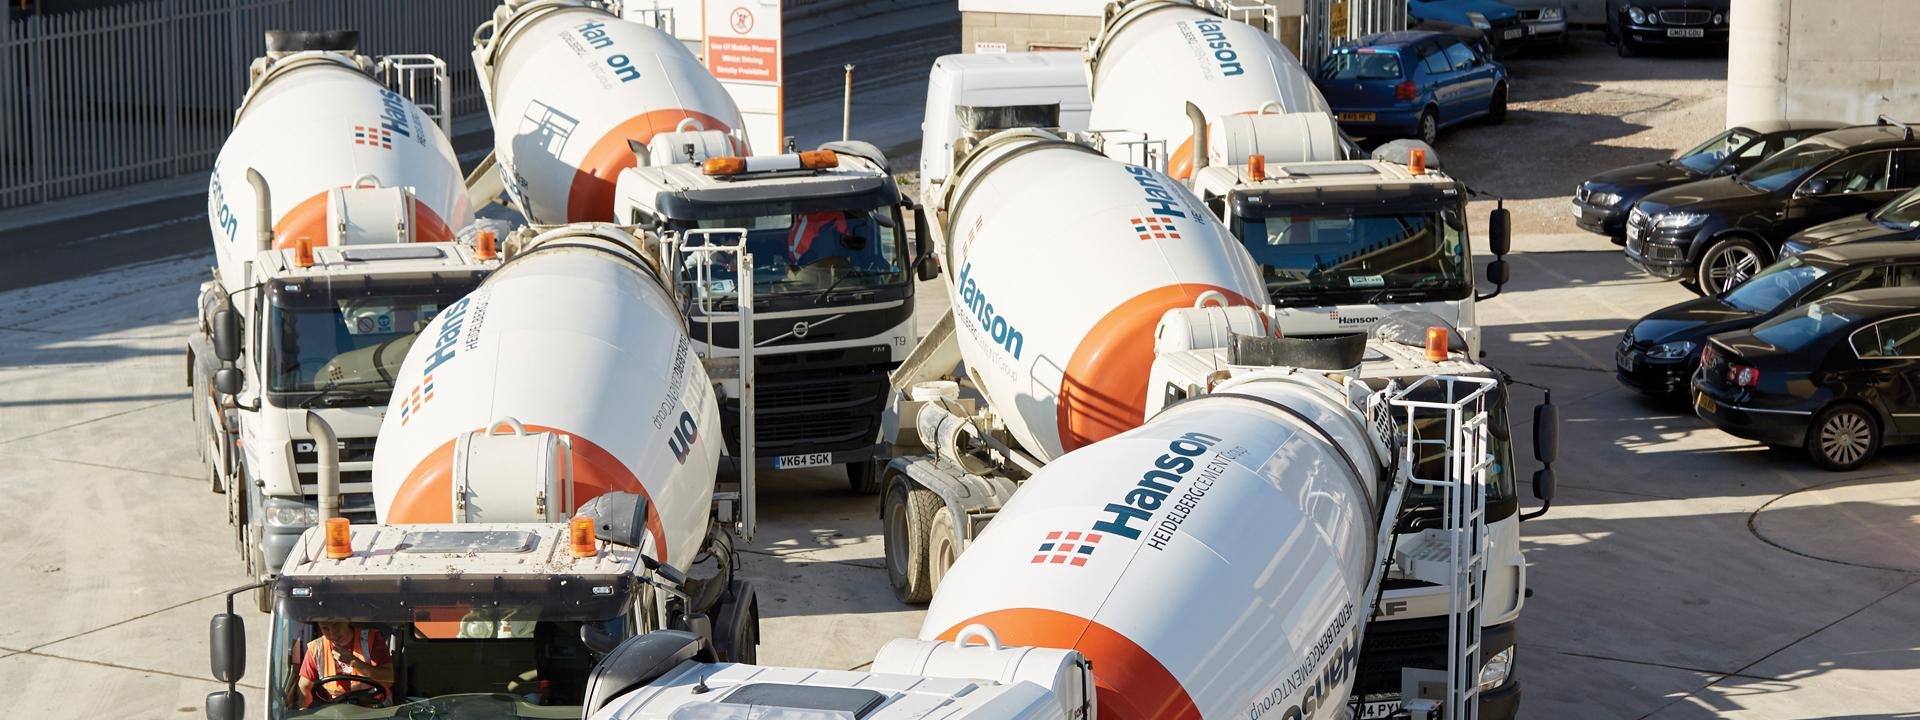 Hanson readymixed concrete trucks.